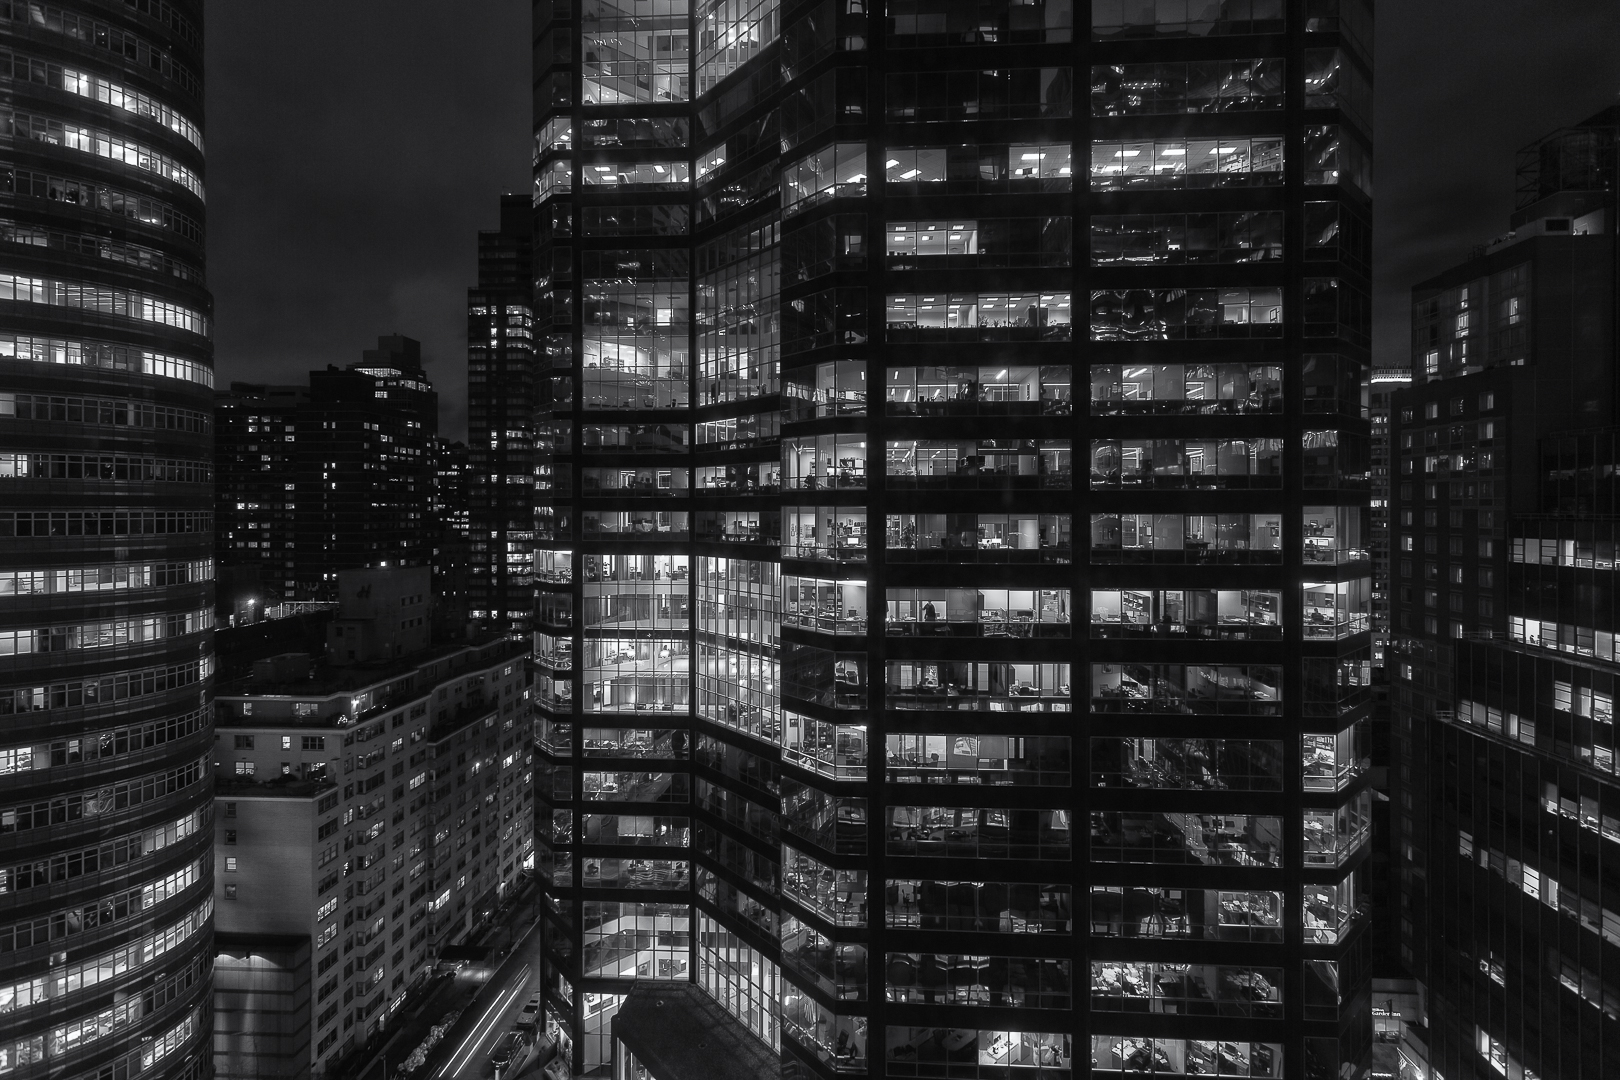 black and white art photography by Celia Ruiz de Castilla - building exterior of office windows lit at night New York